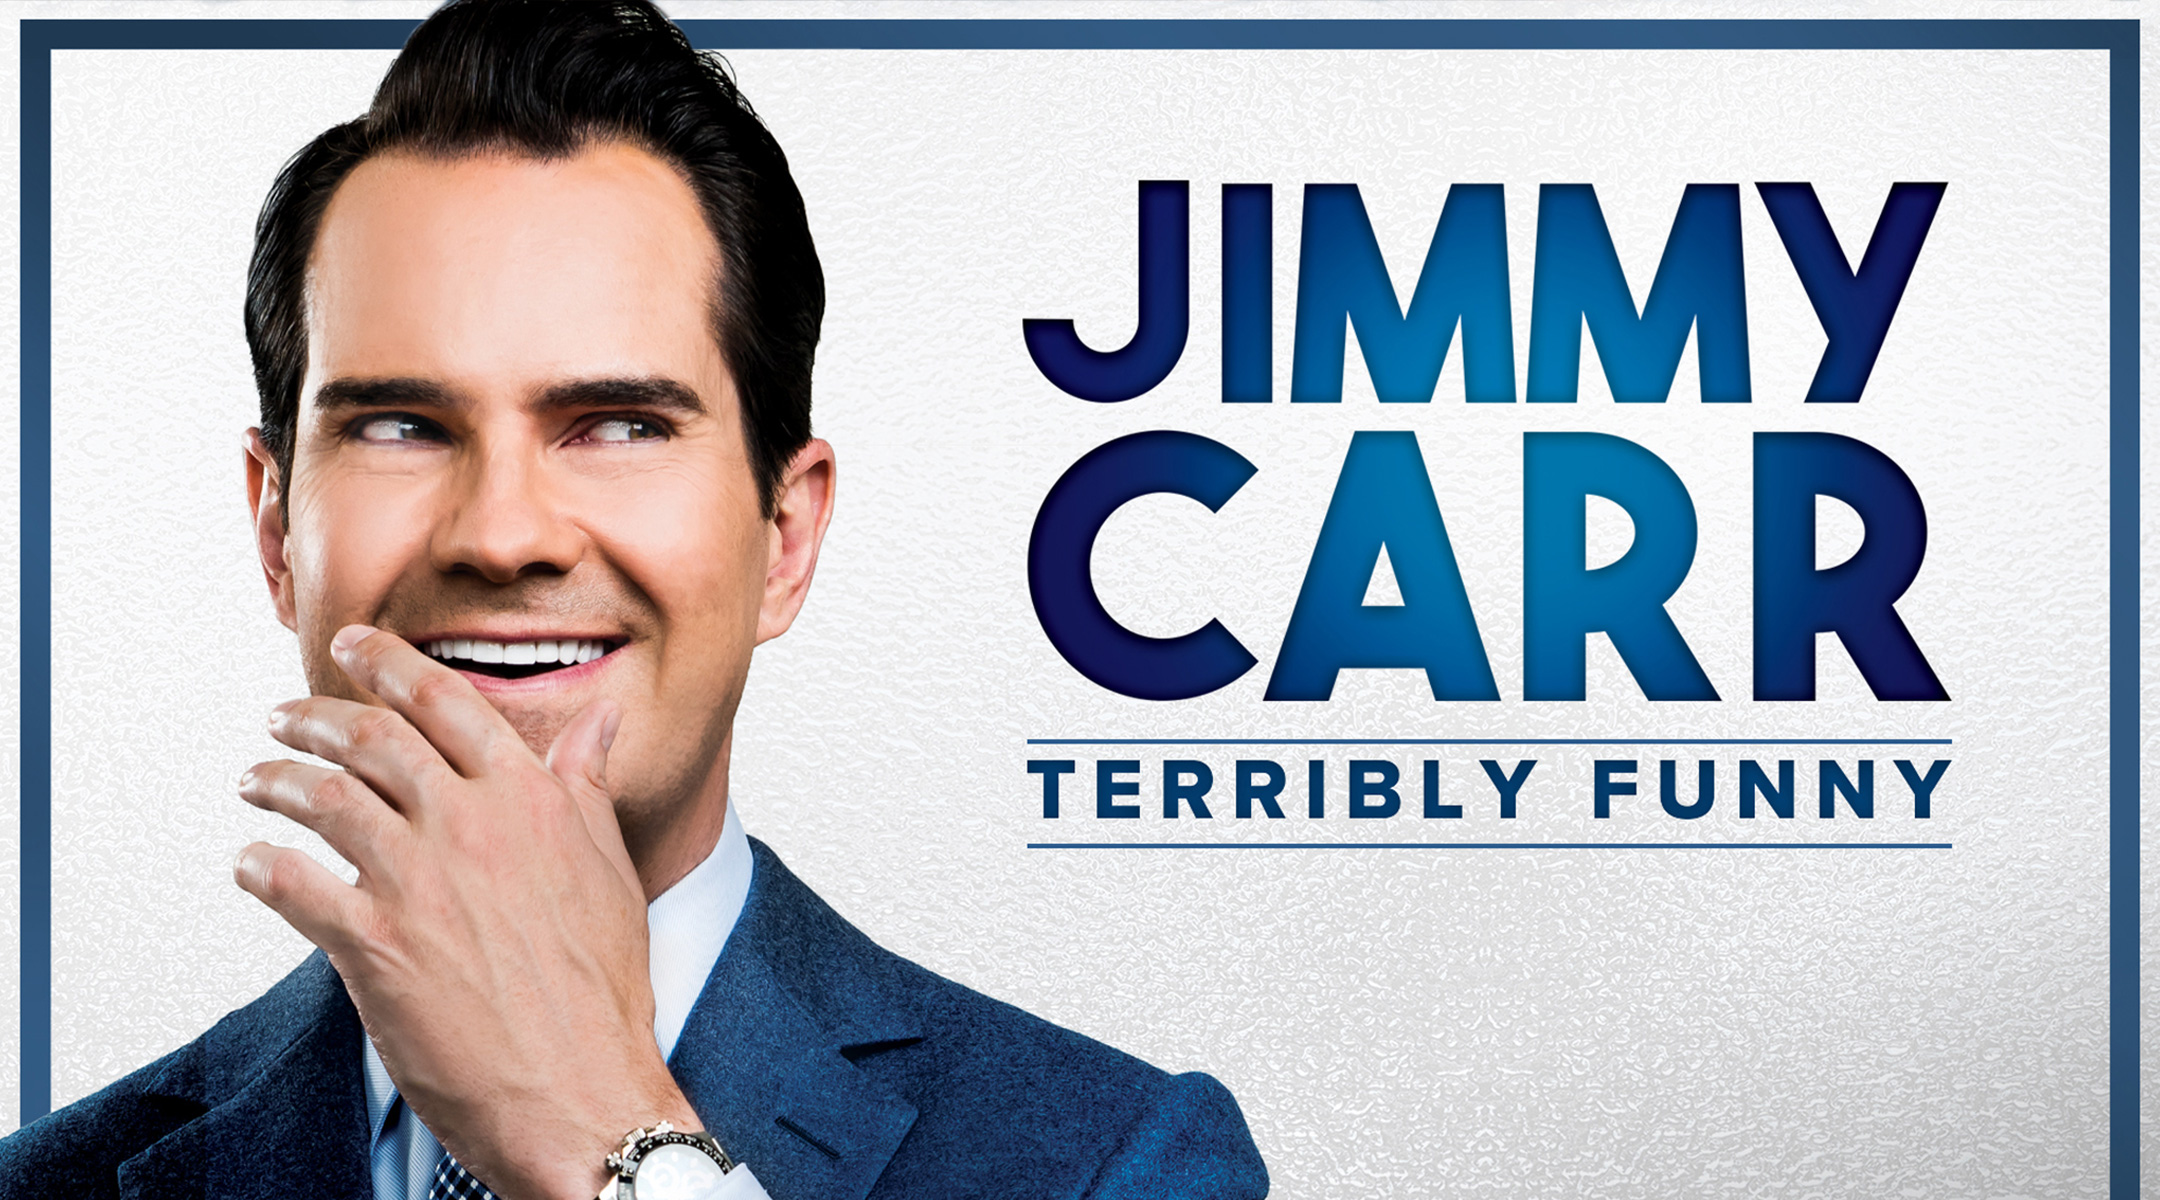 Jimmy Carr: Terribly Funny - Warwick 23rd